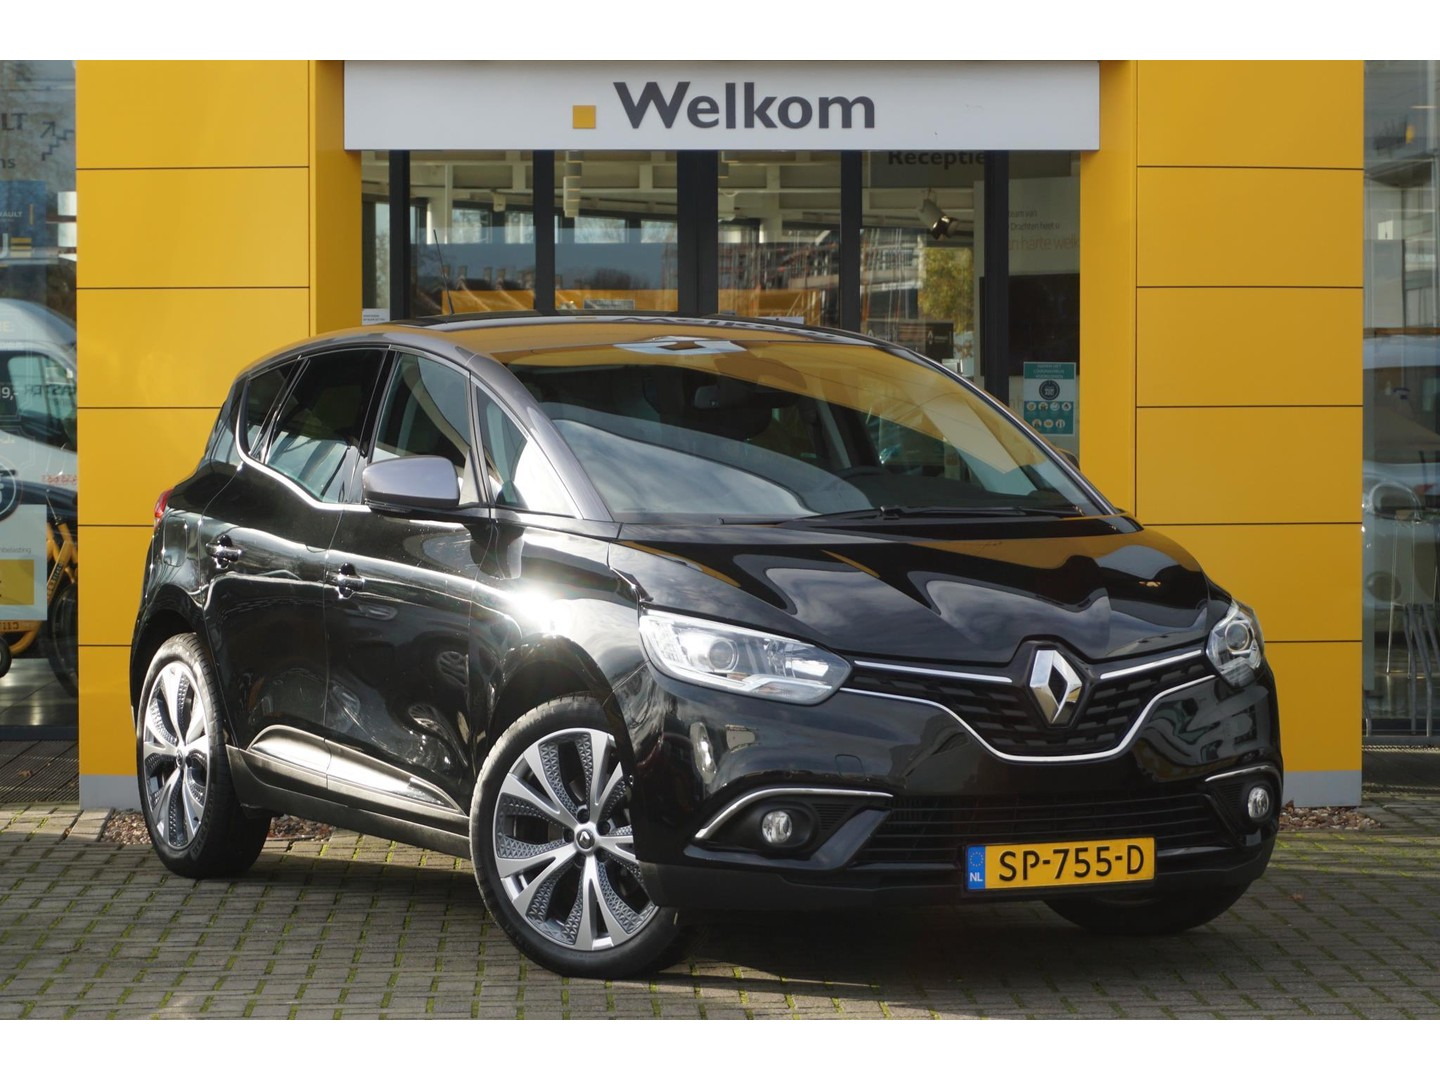 Renault Scénic Tce 140pk edc intens